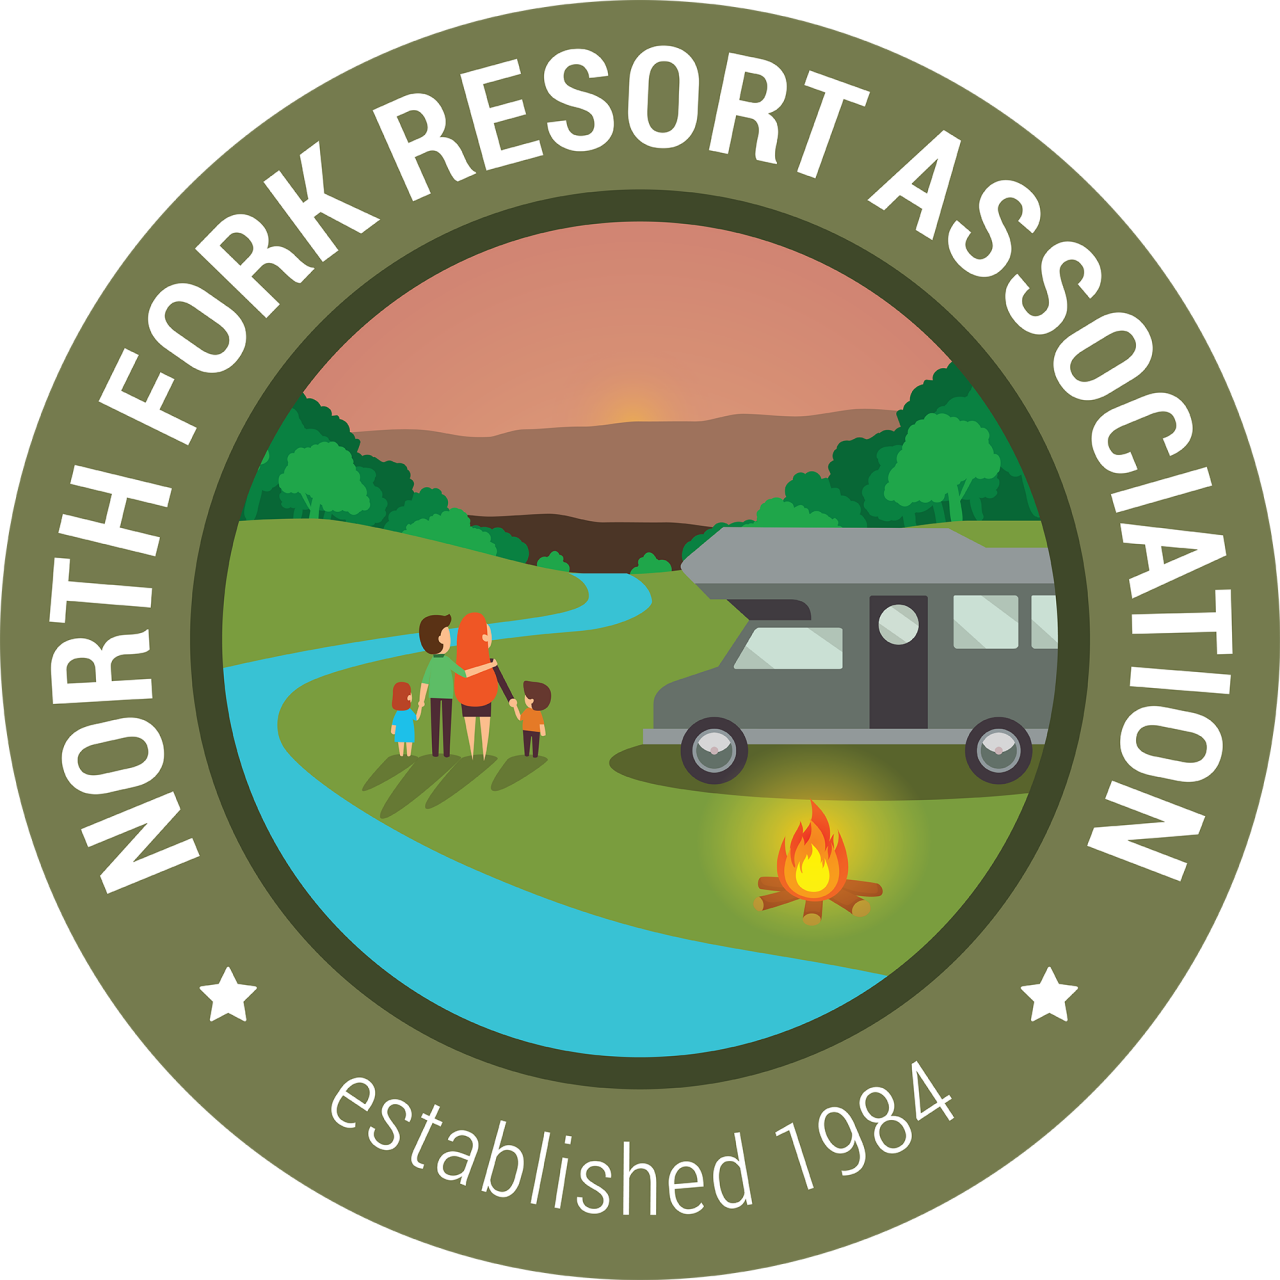 North Fork Resort Association located in 301 North Fork Rd Front Royal, VA. 22630,